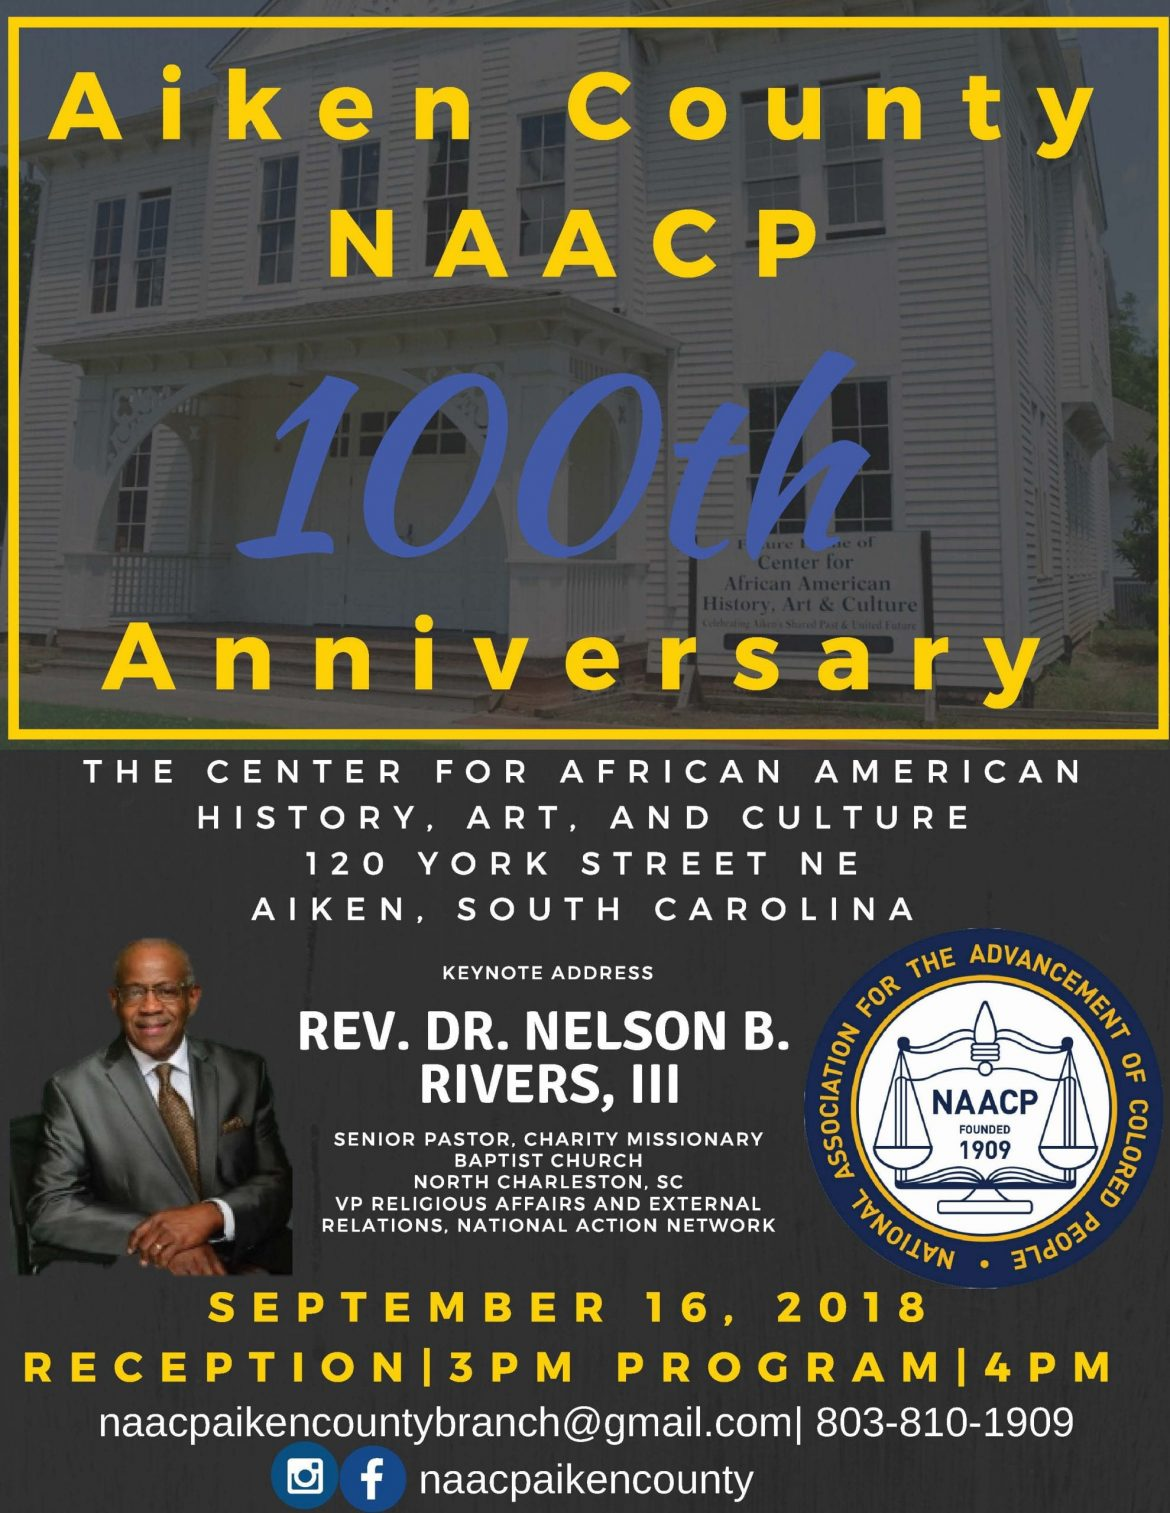 Aiken County NAACP 100th Anniversary